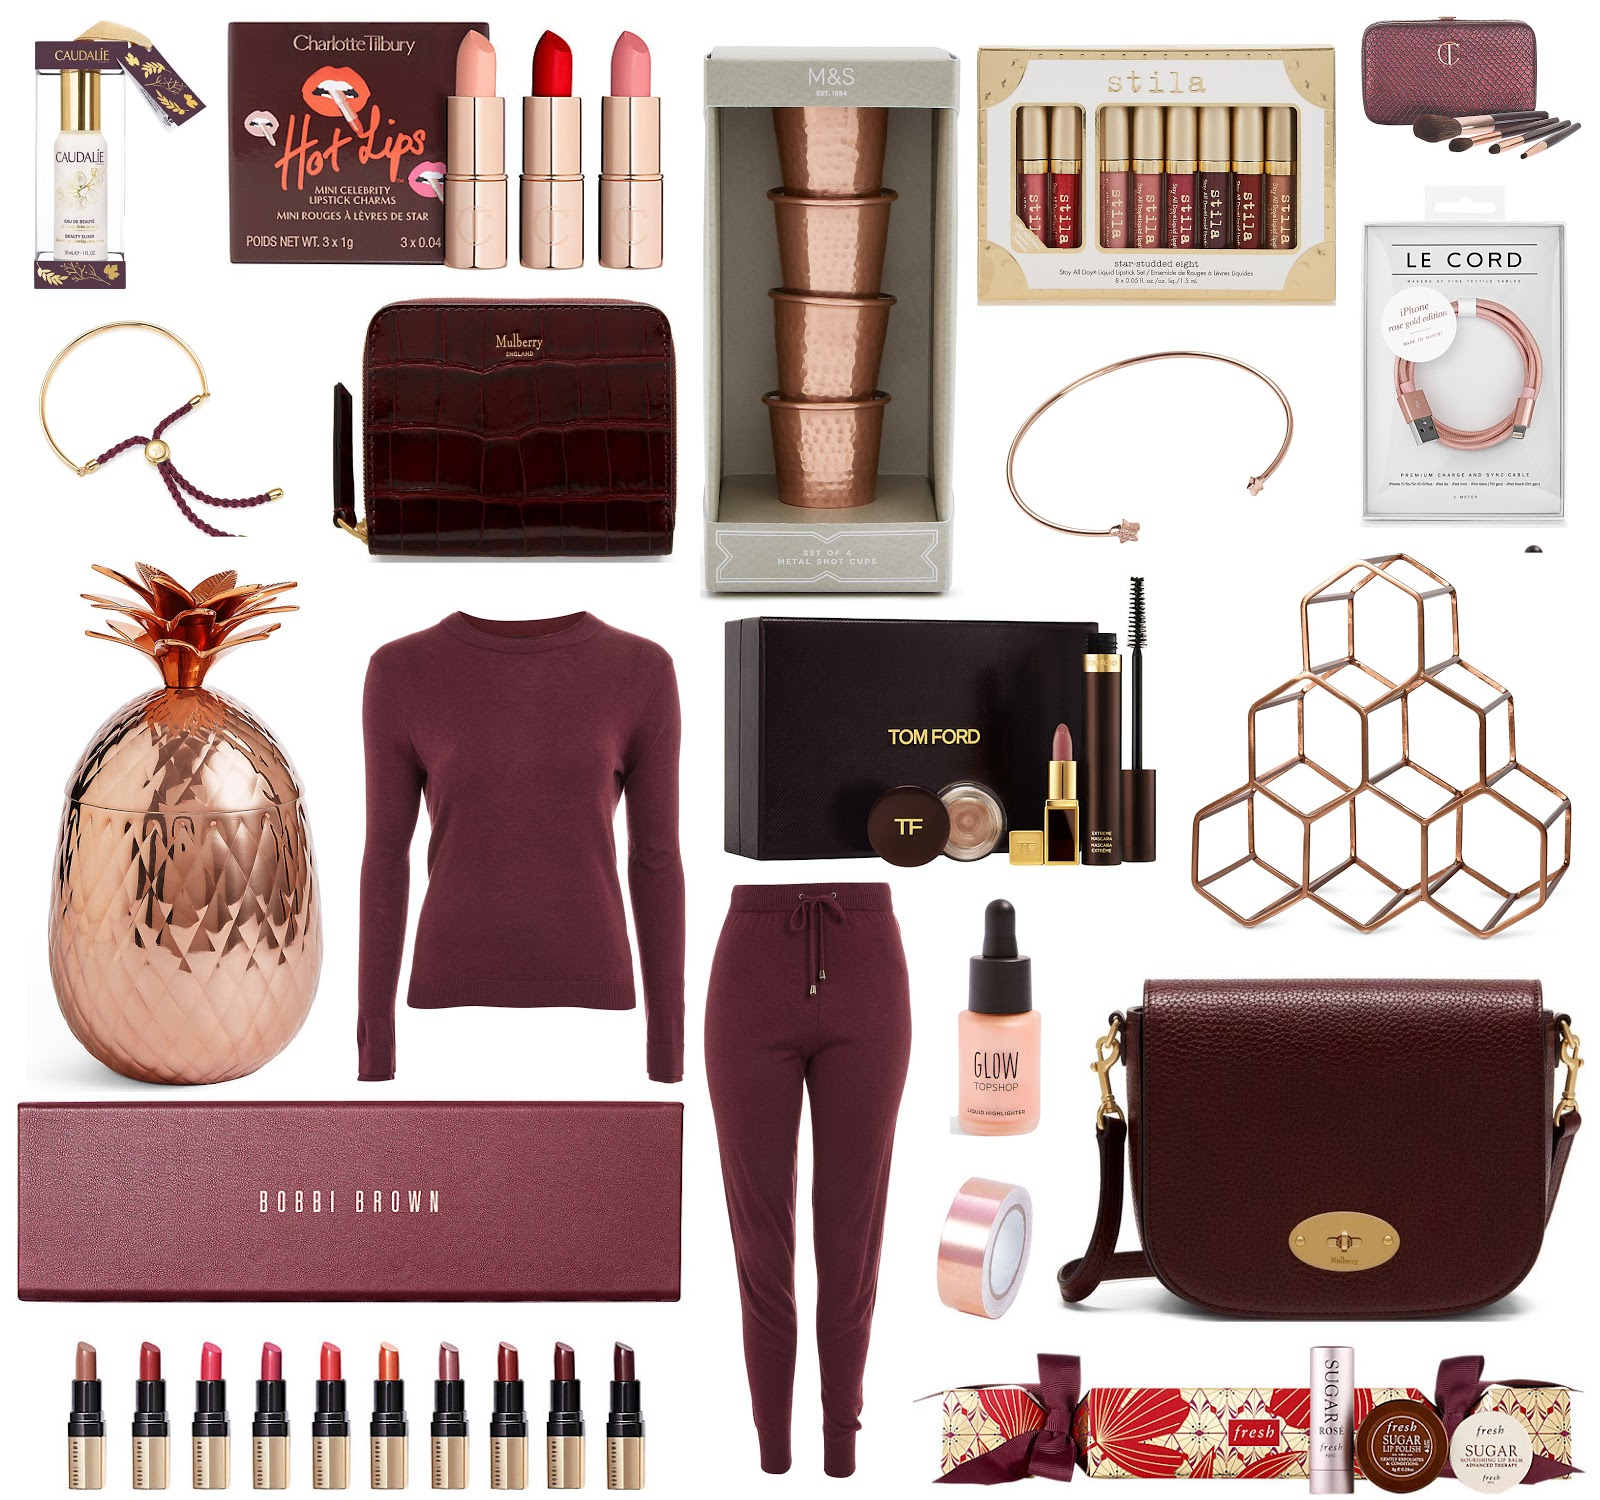 The city girl blog ultimate gift guide 2017 face spray cracker caudalie mini lipsticks charlotte tilbury shot glasses ms liquid lipstick set stila mini brush set charlotte solutioingenieria